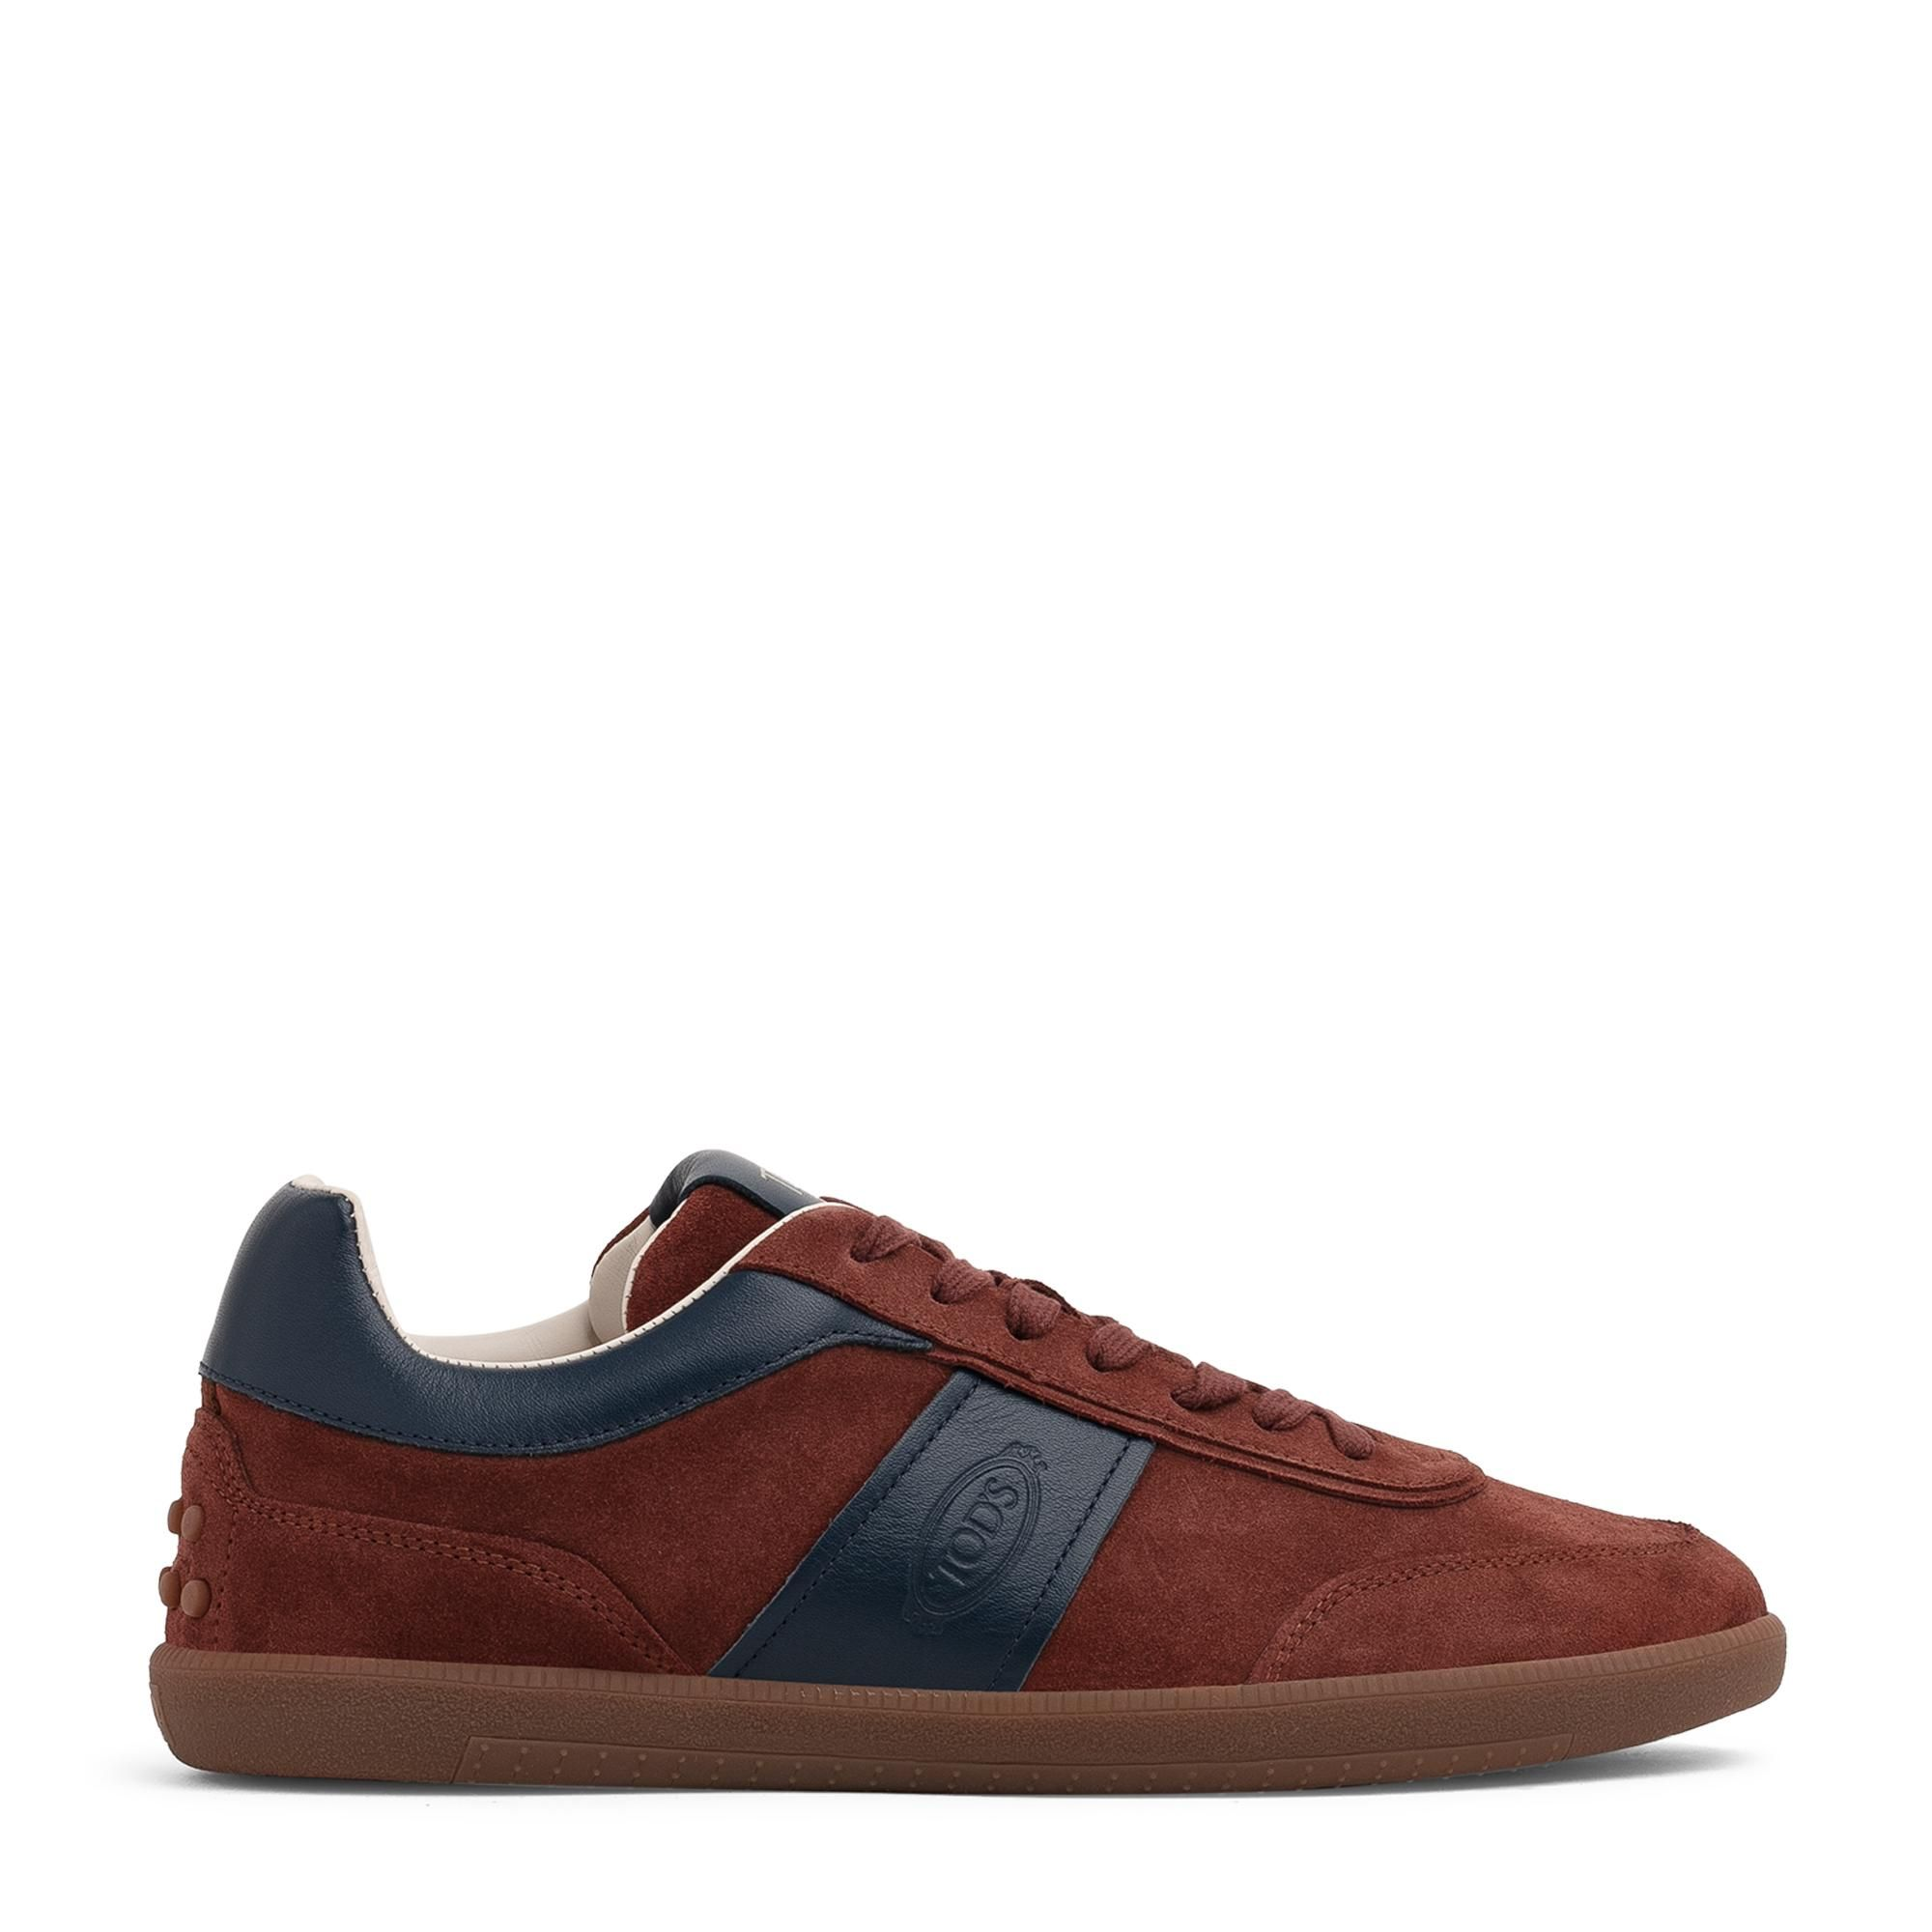 Tabs leather sneakers